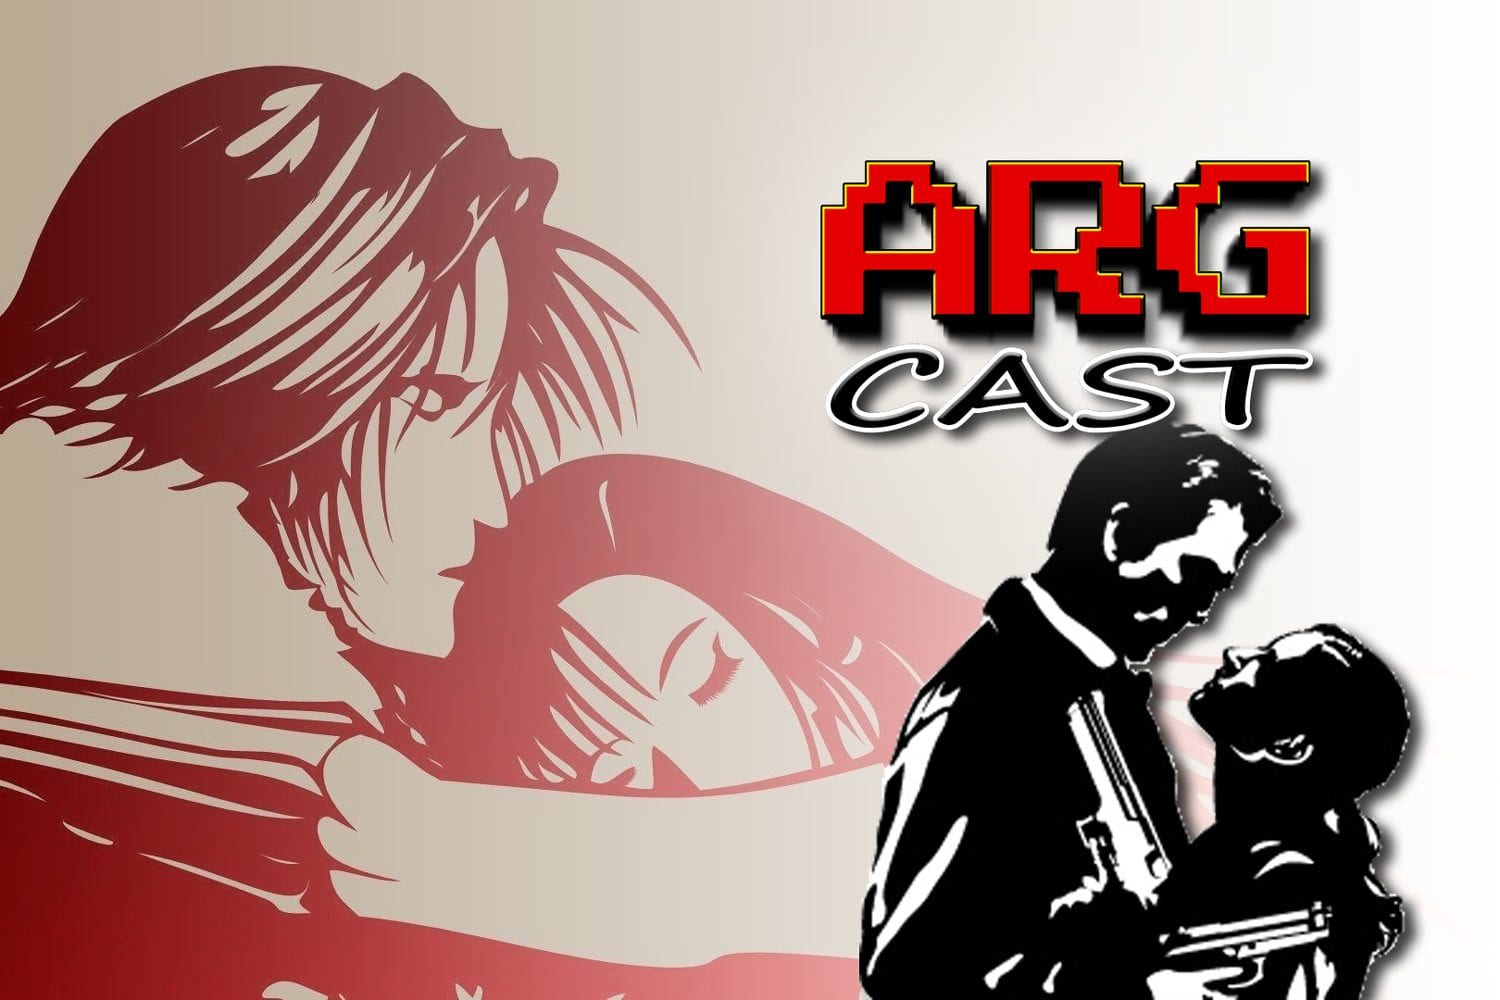 ARGcast #97: Love in Retro Gaming with Nick Shively and Lori Dierinzo